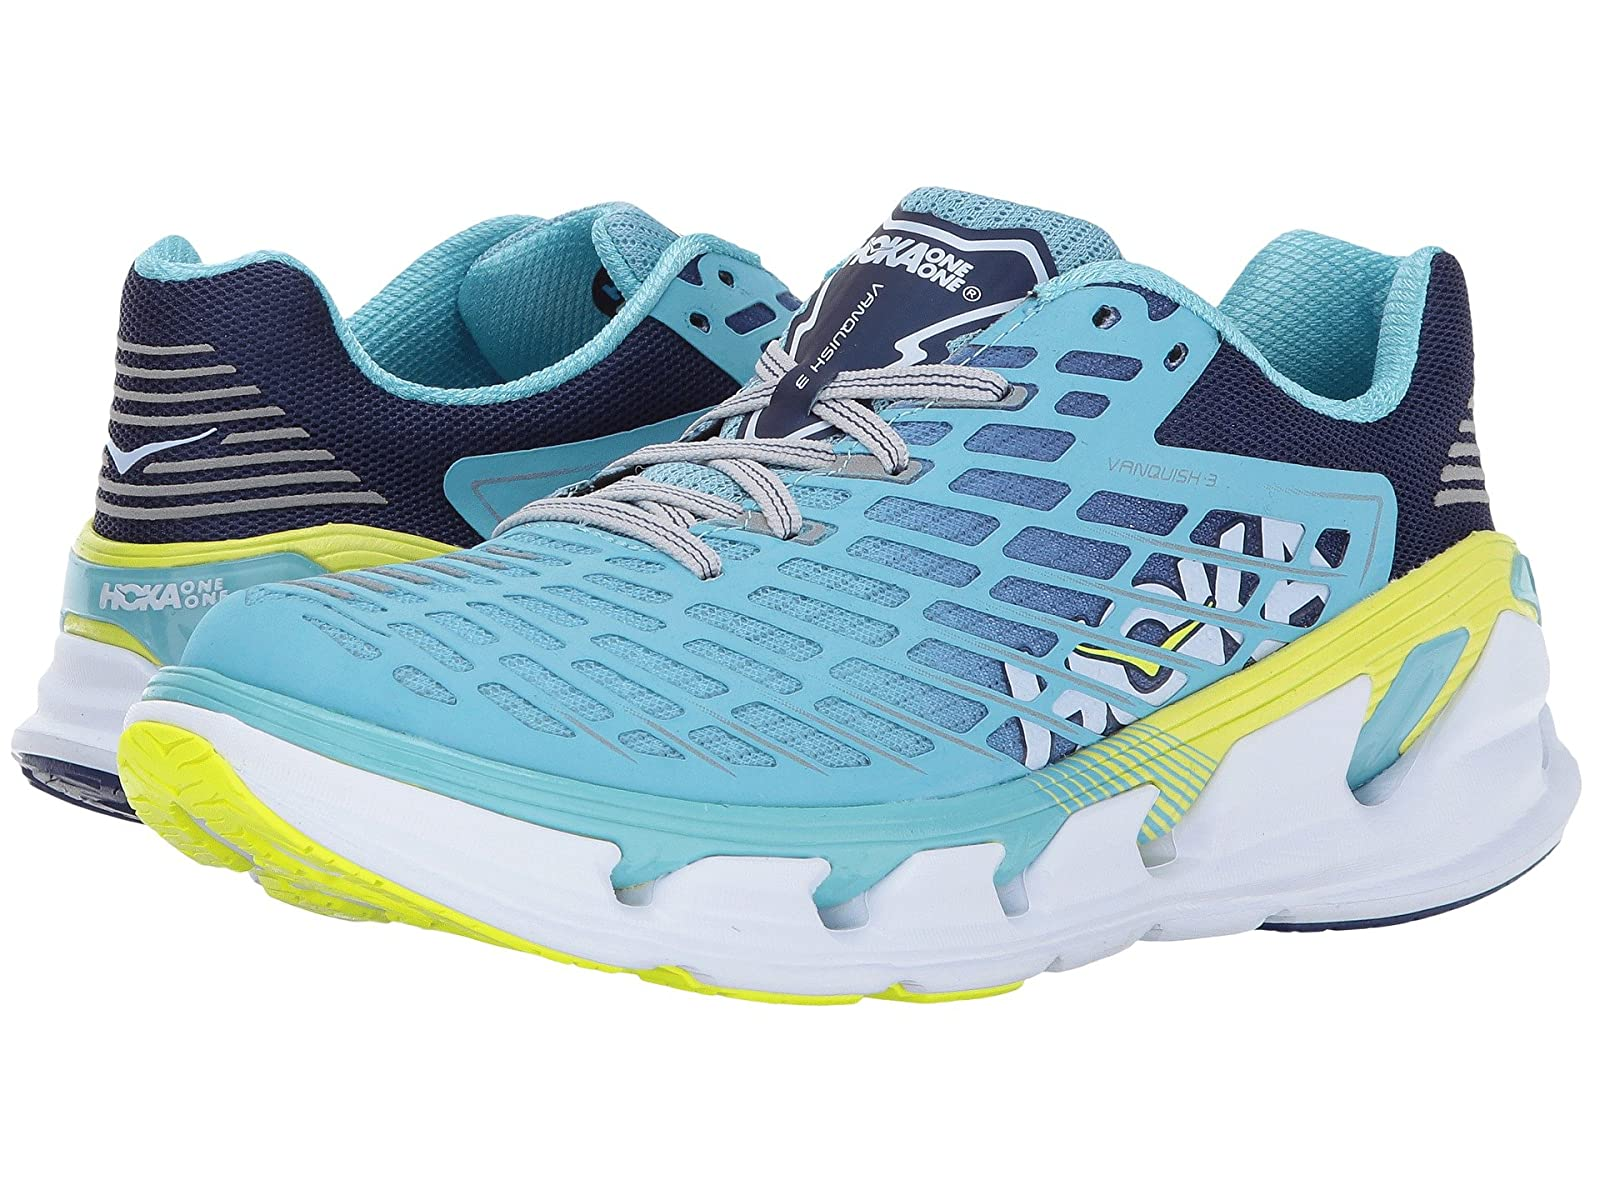 Hoka One One Vanquish 3Atmospheric grades have affordable shoes